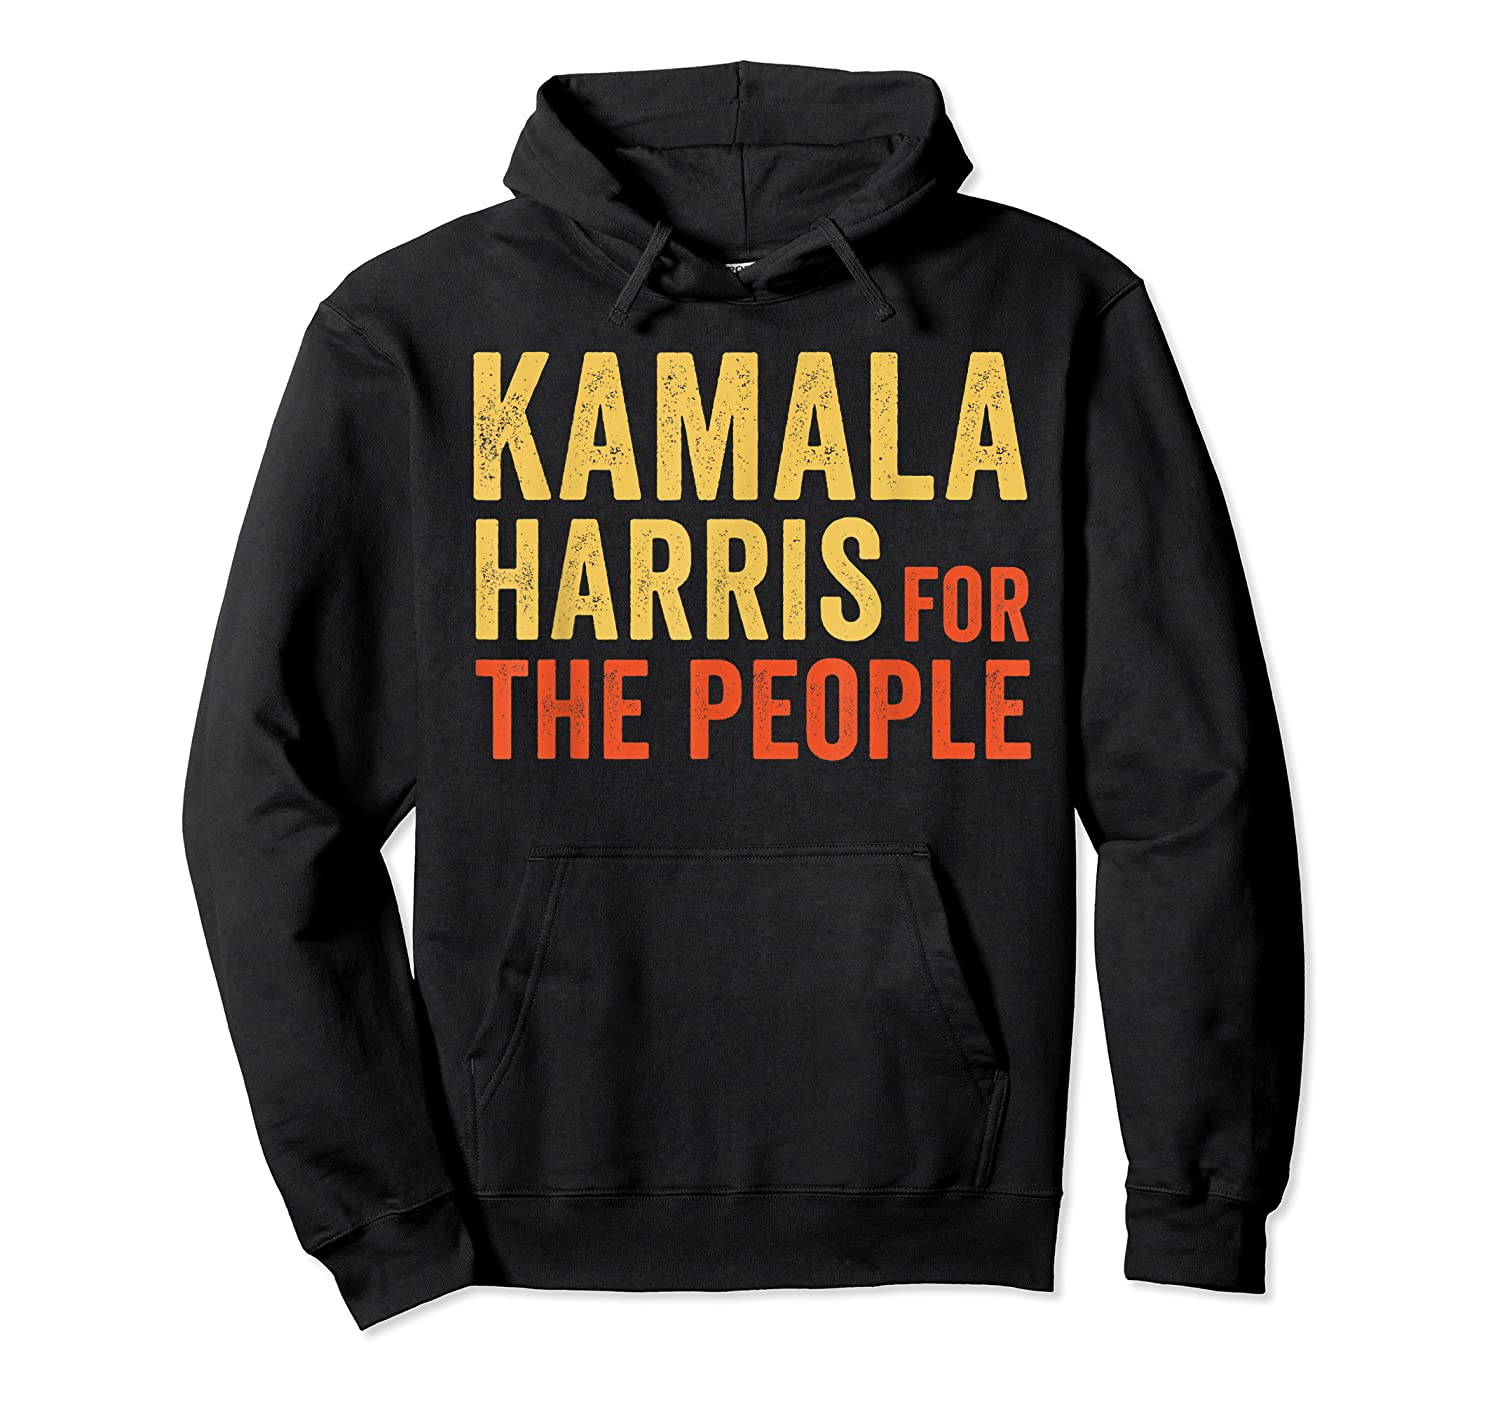 Kamala Harris For The People, President 2020 Shirts Unisex Pullover Hoodie